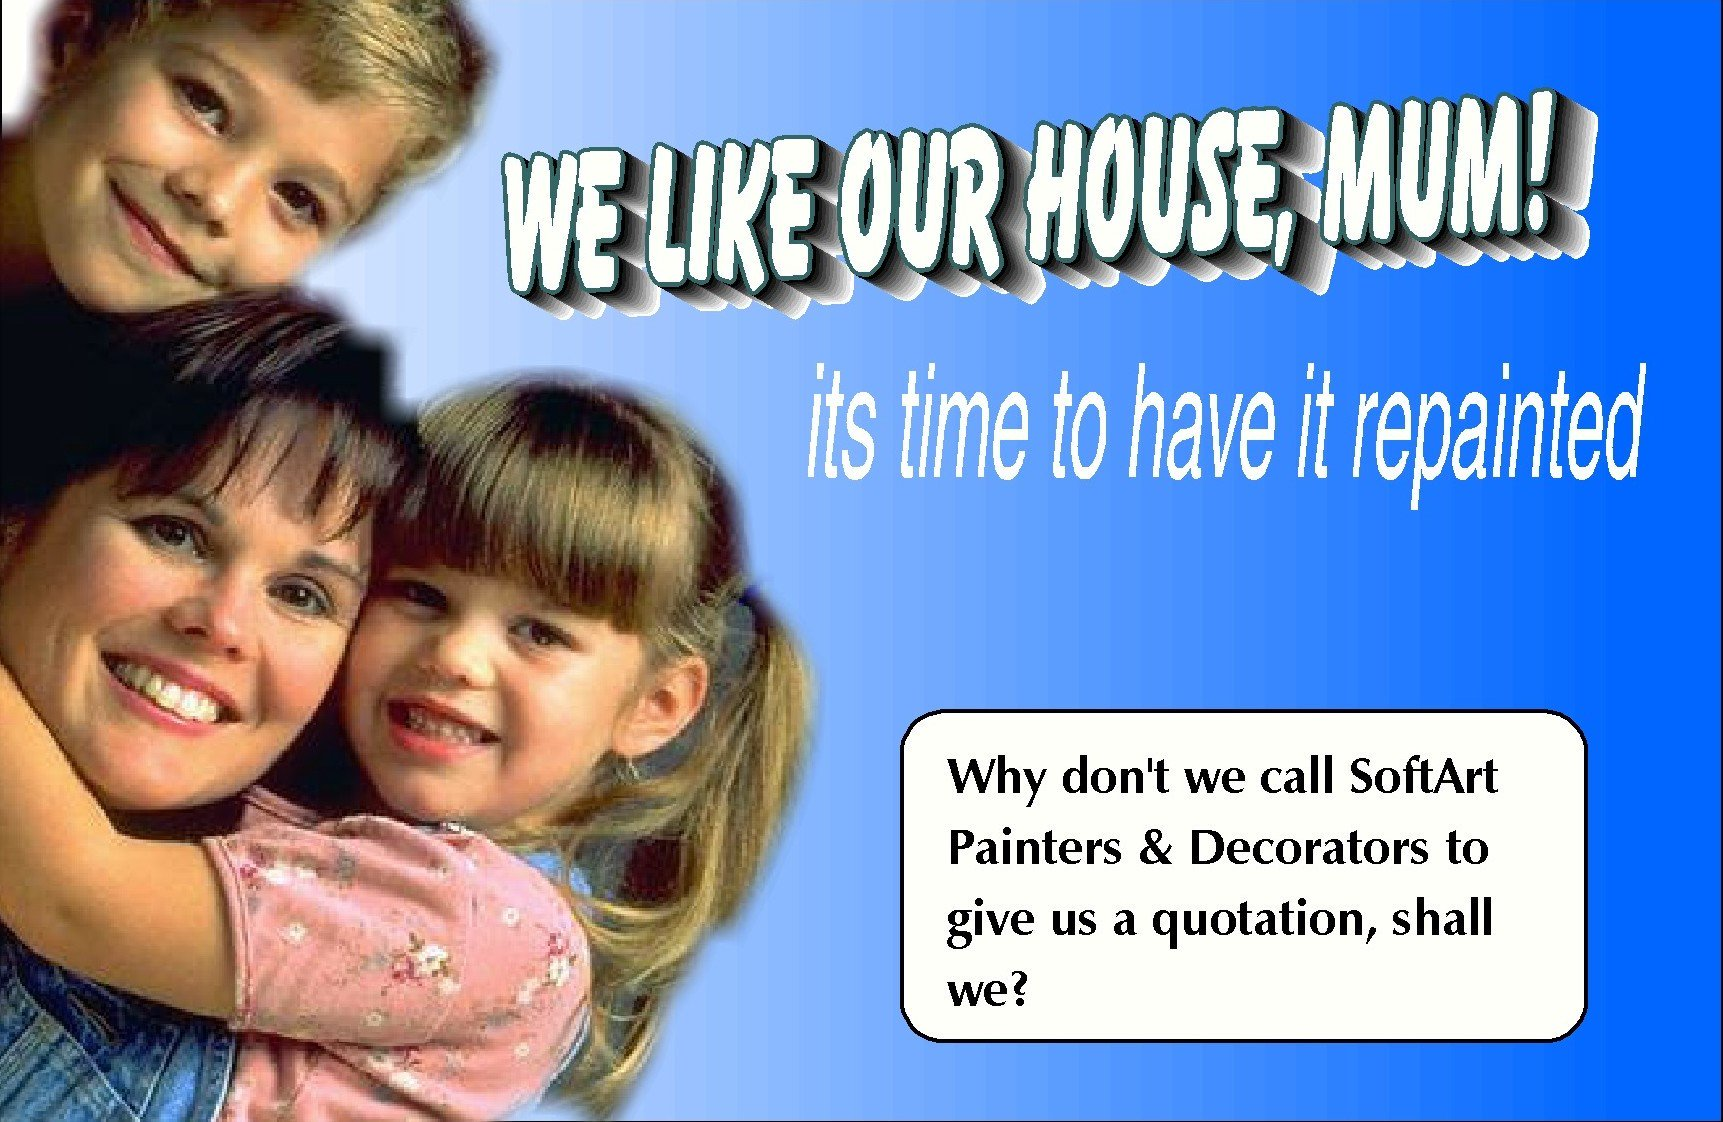 SERVICES: House Painting, Decoration & Renovations